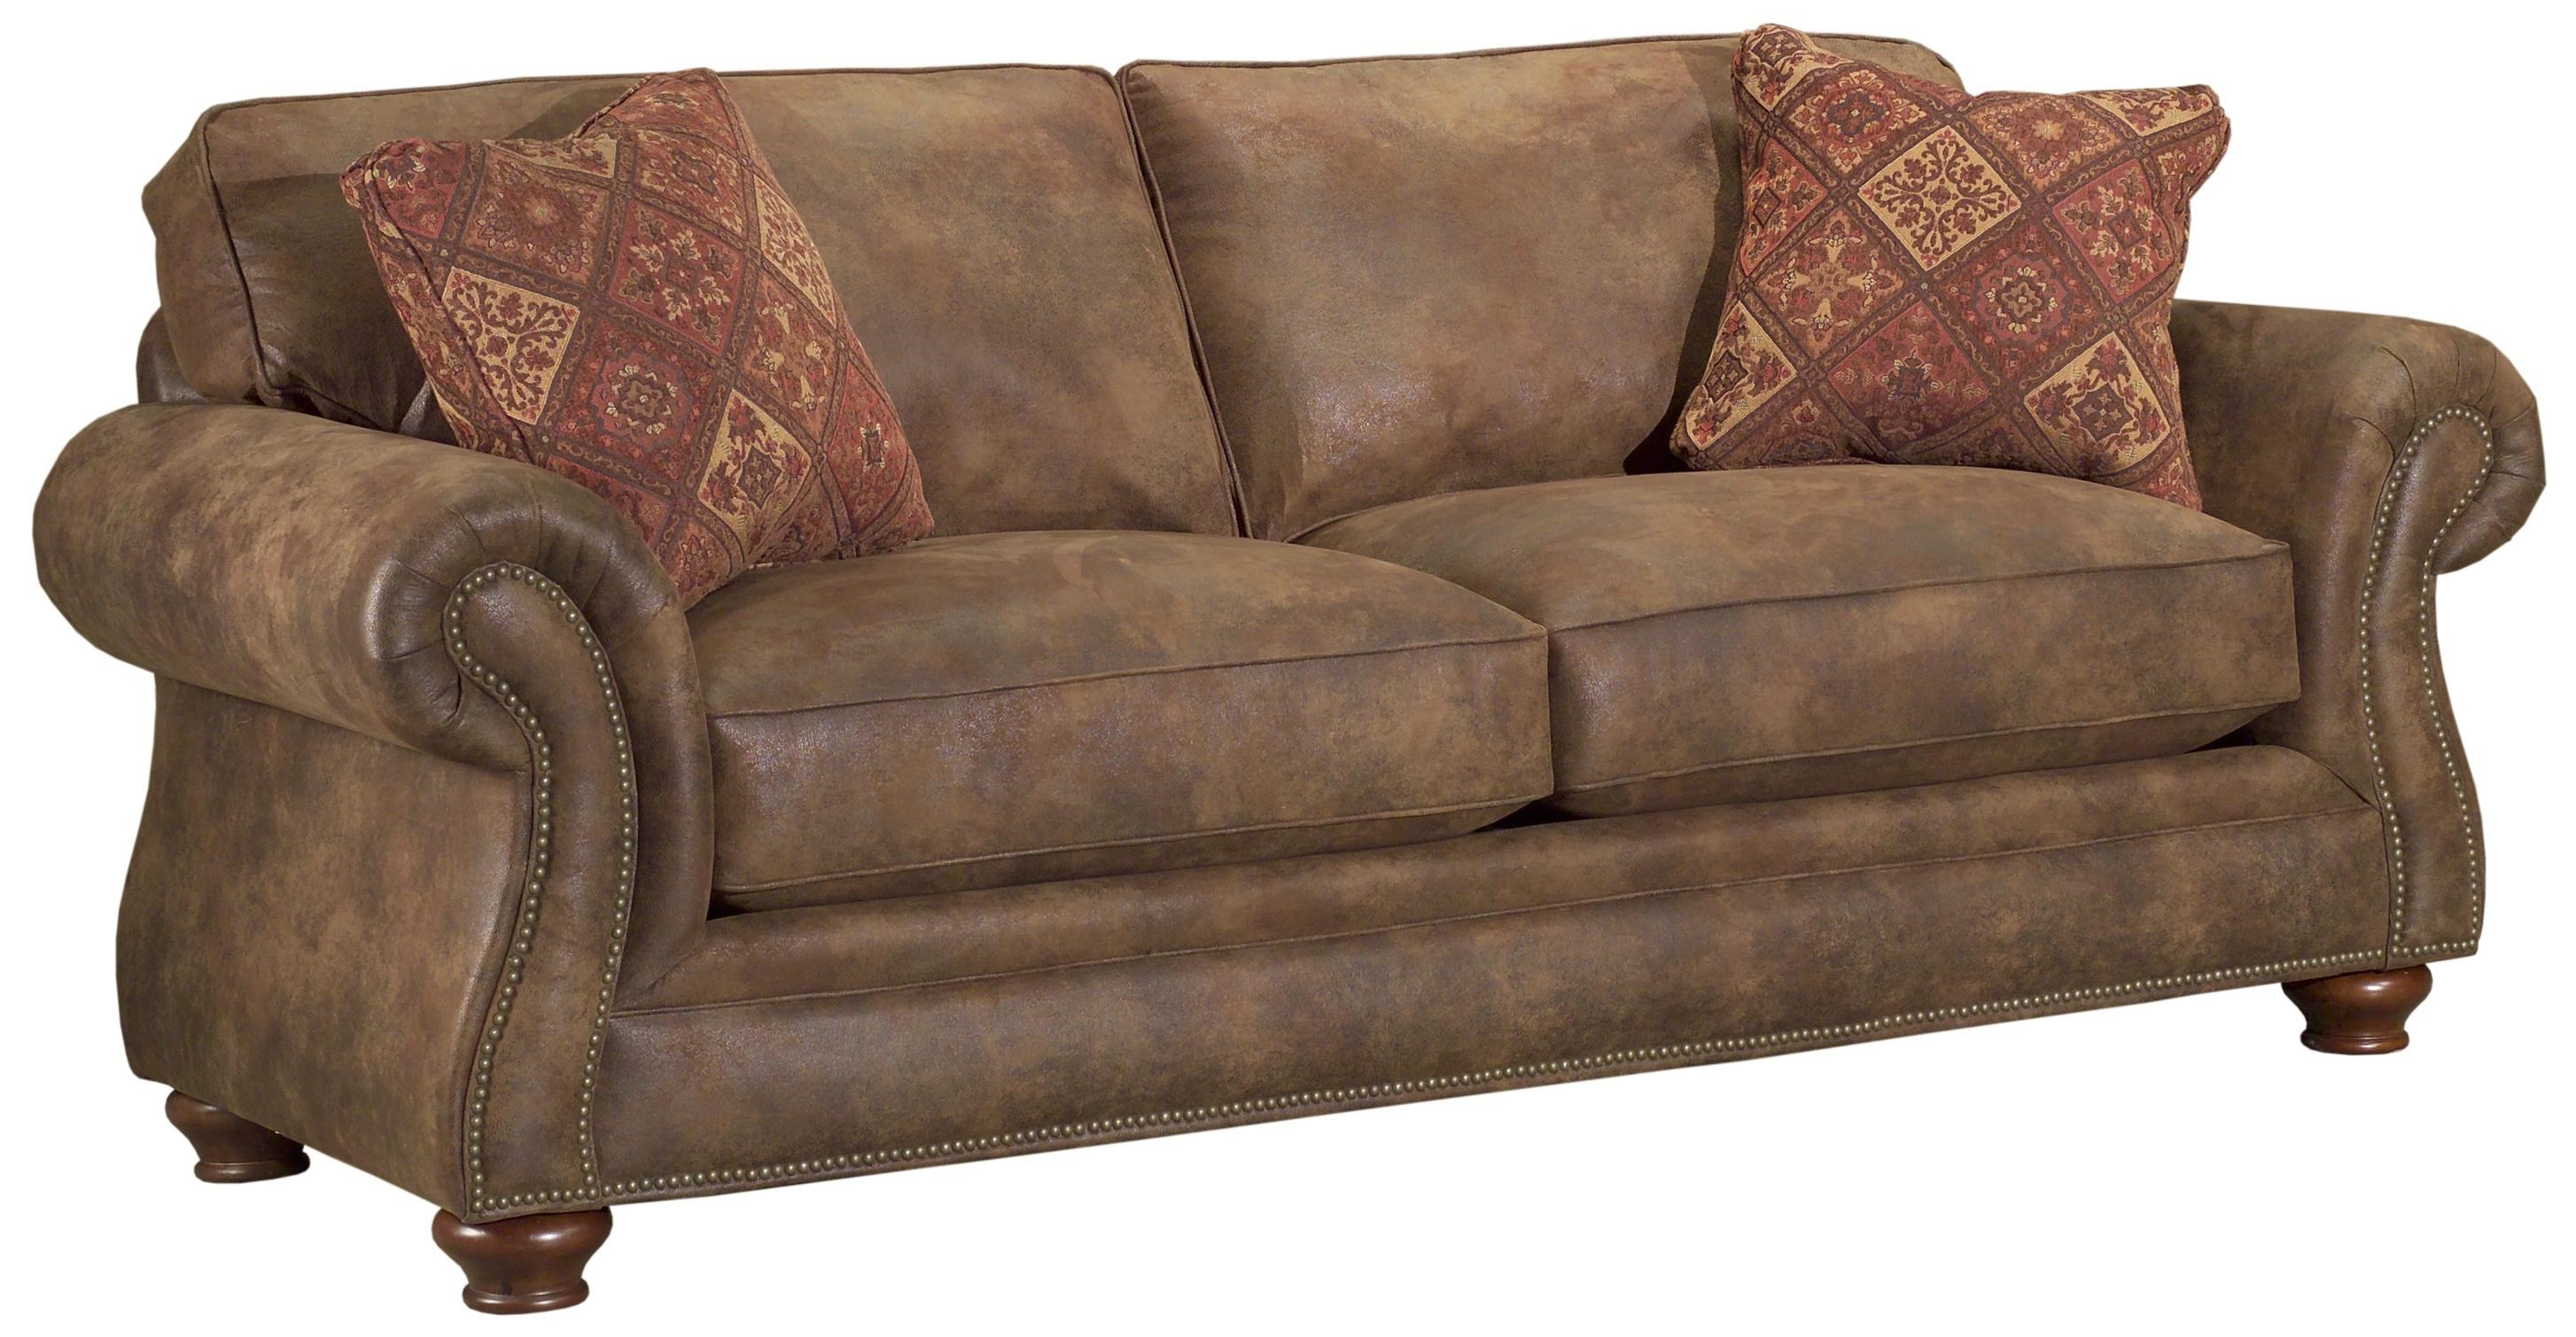 traditional sleeper sofa bed broyhill express laramie quick ship traditional sleeper sofa with nail head trim